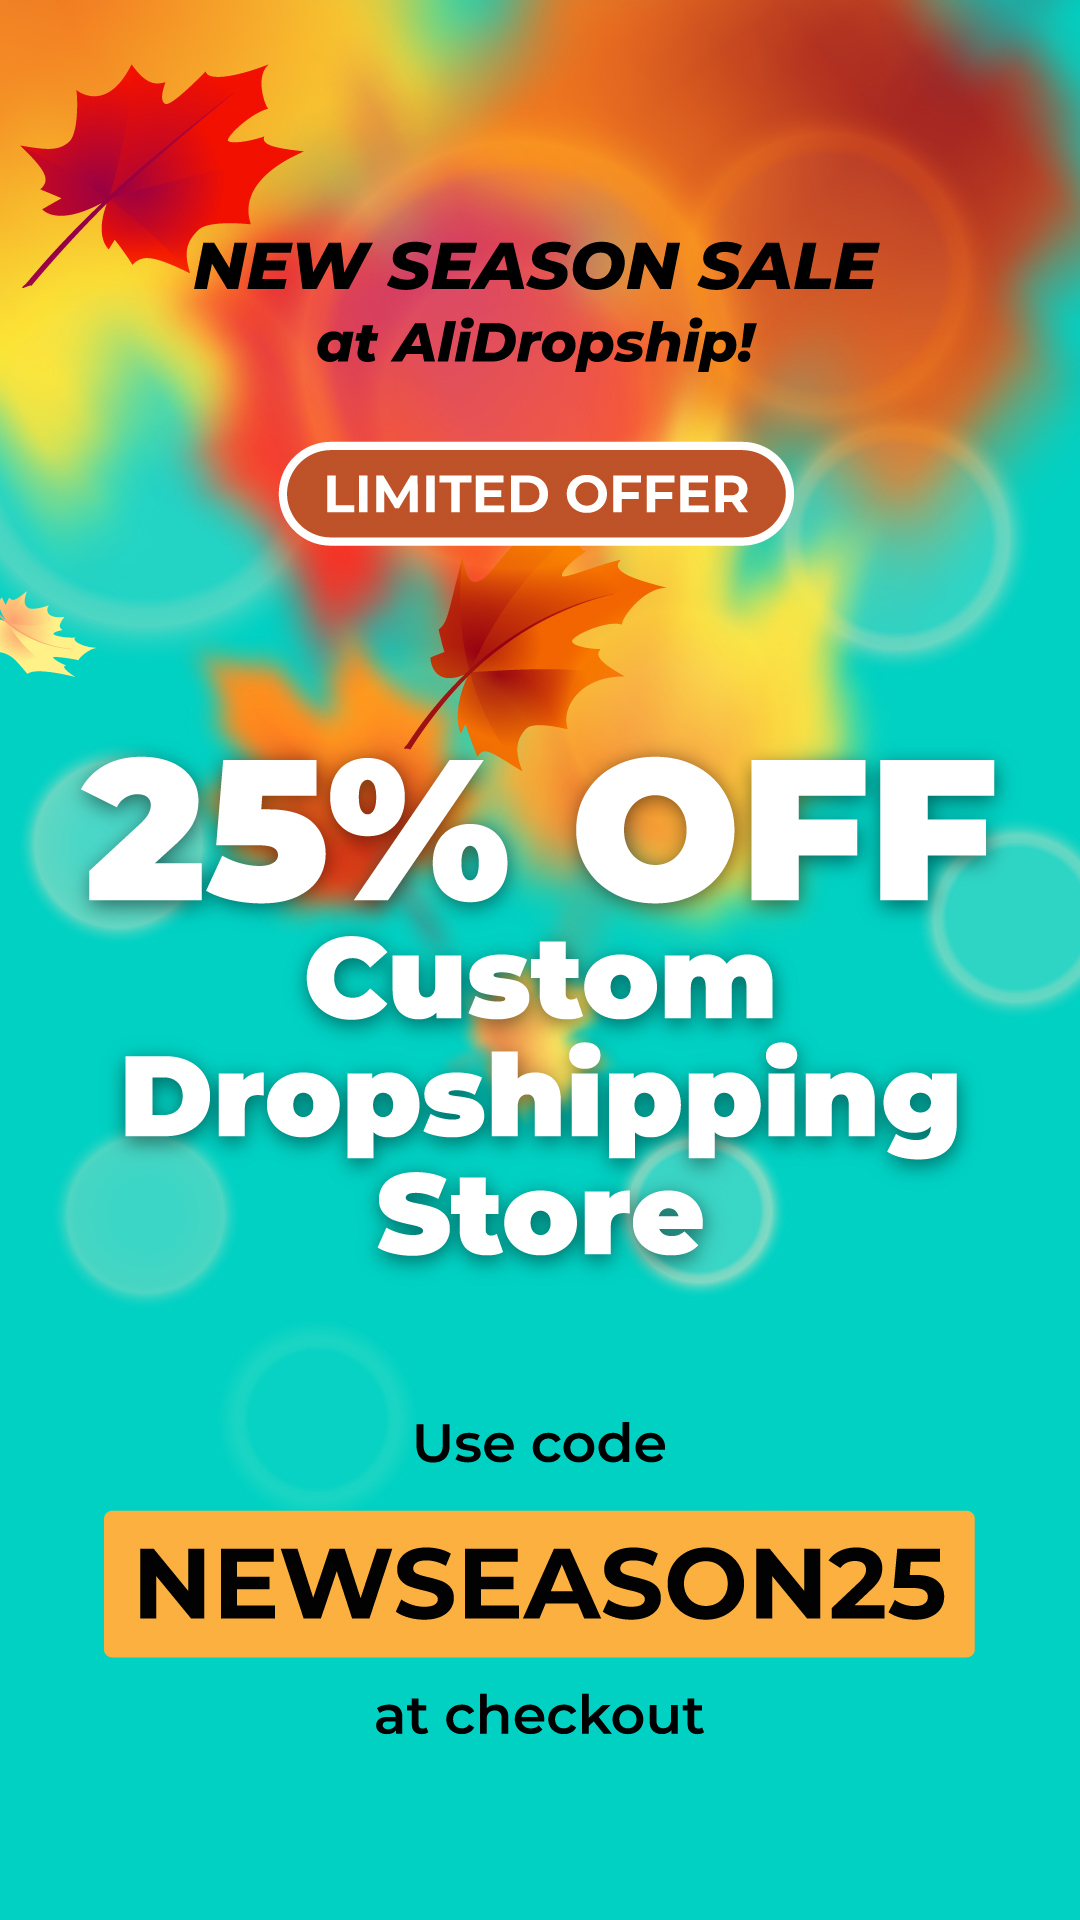 25% off Custom Dropshipping Store